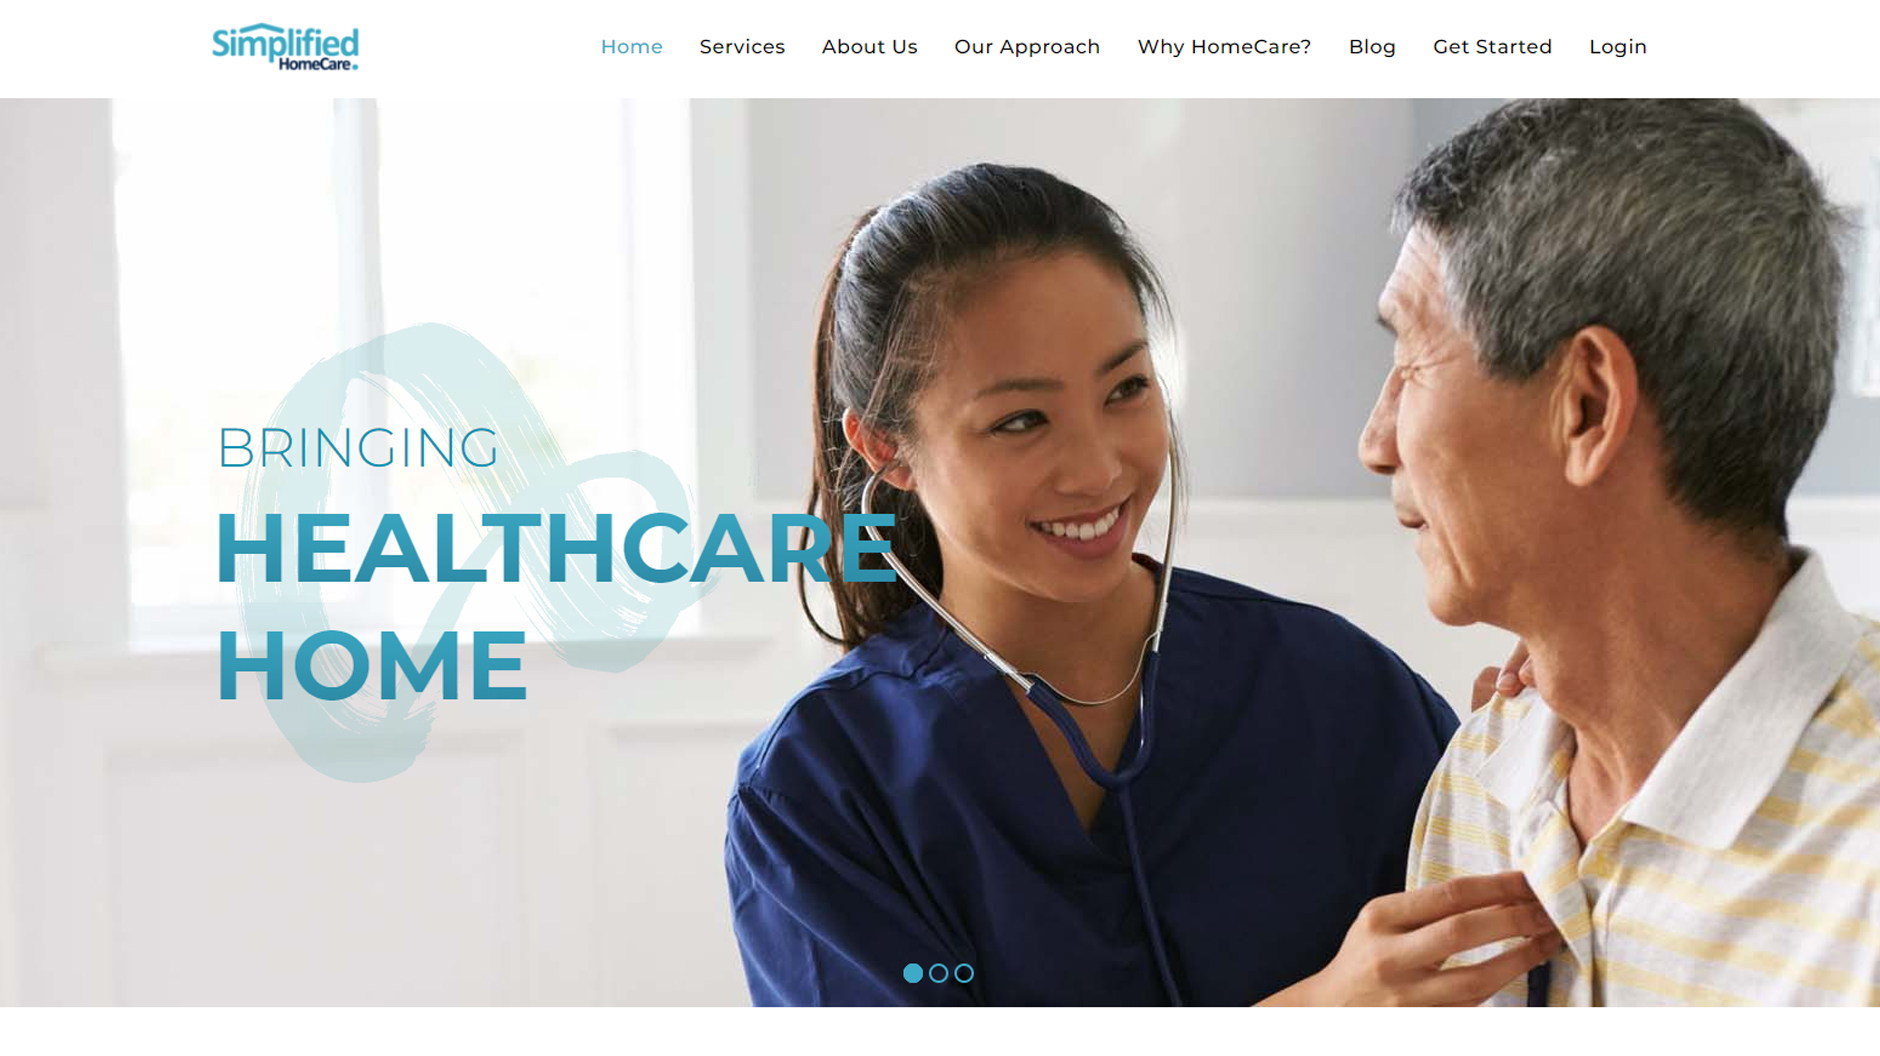 Site - Simplified Homecare